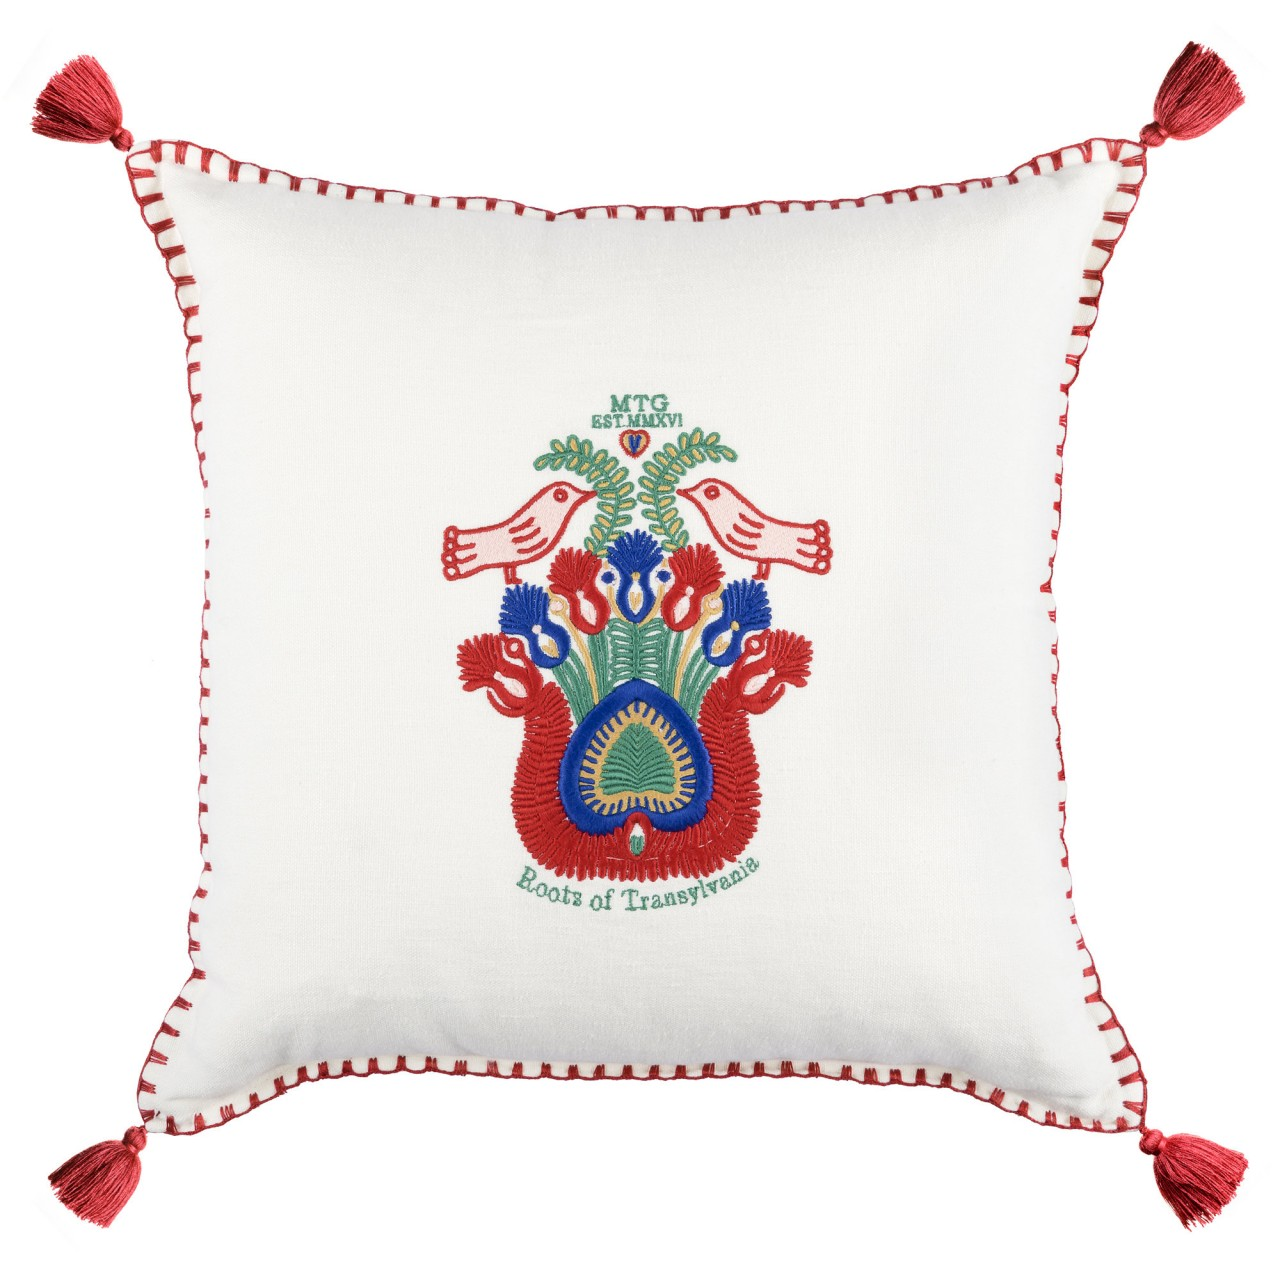 ROOTS OF TRANSYLVANIA Linen Embroidered Cushion